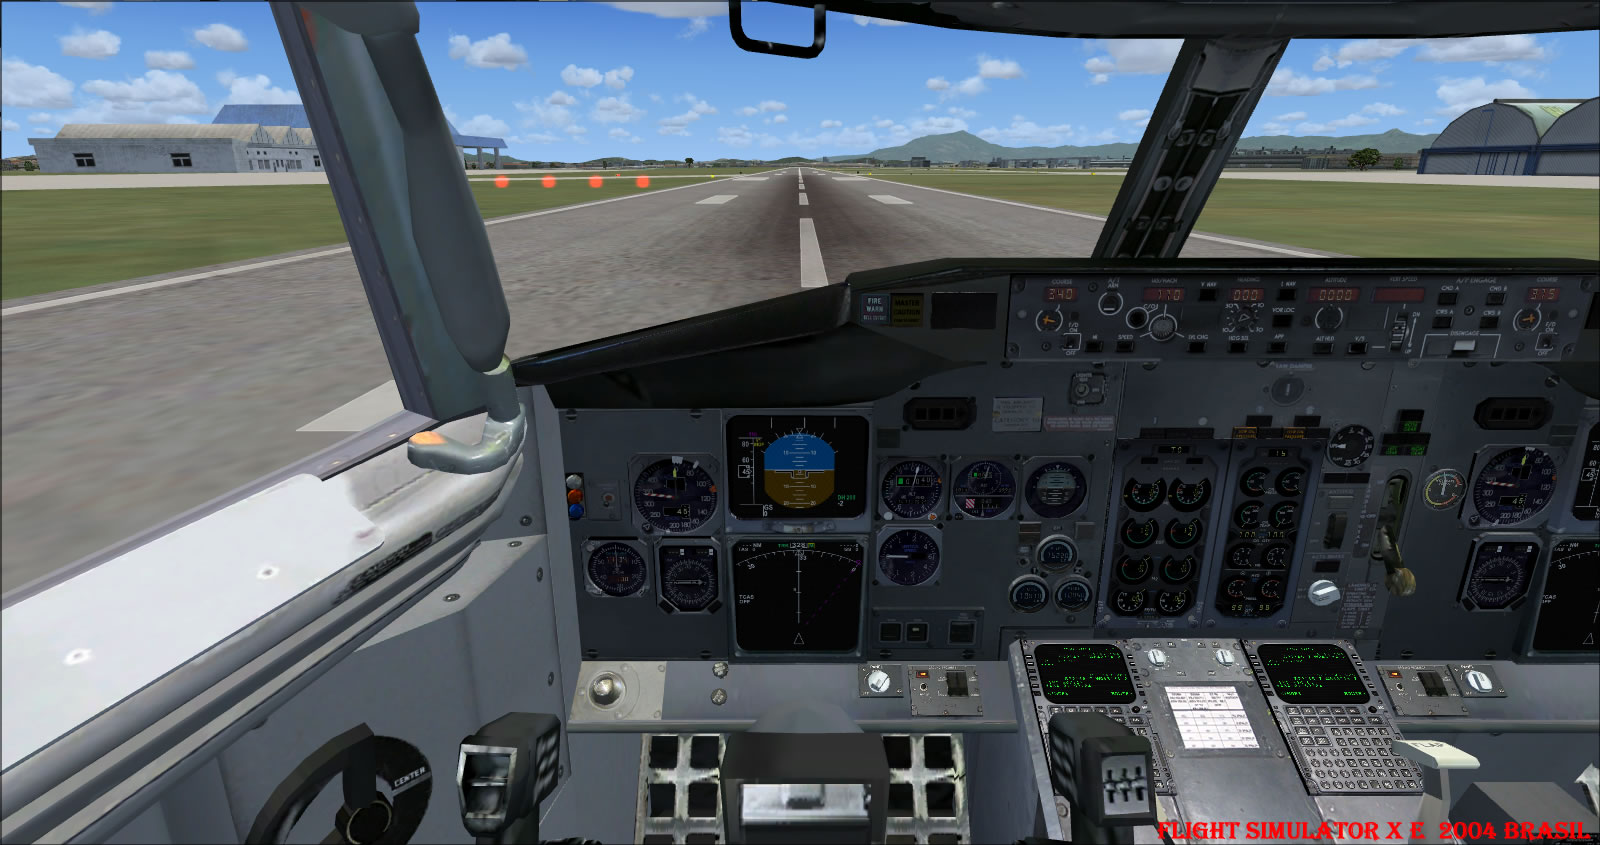 737 500 sites de telechargement fsx » sunorrnamett gq